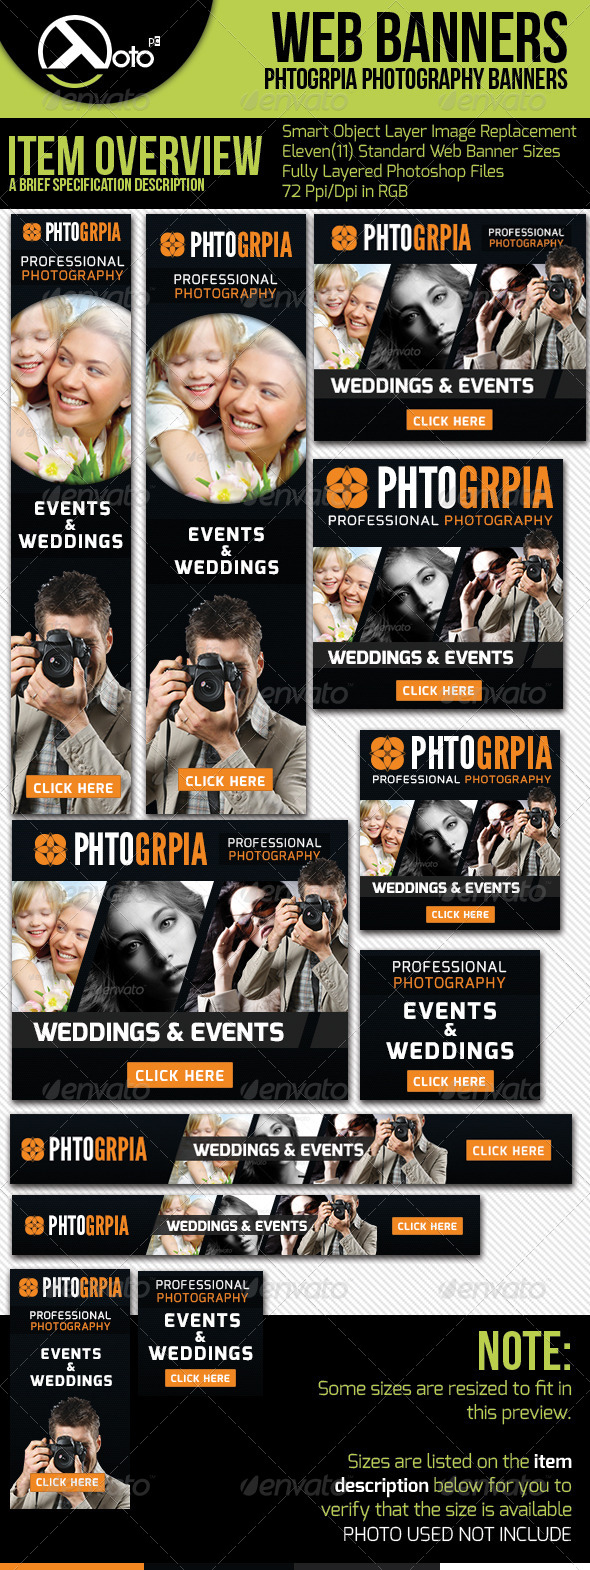 Photographia Professional Photography Web Banners